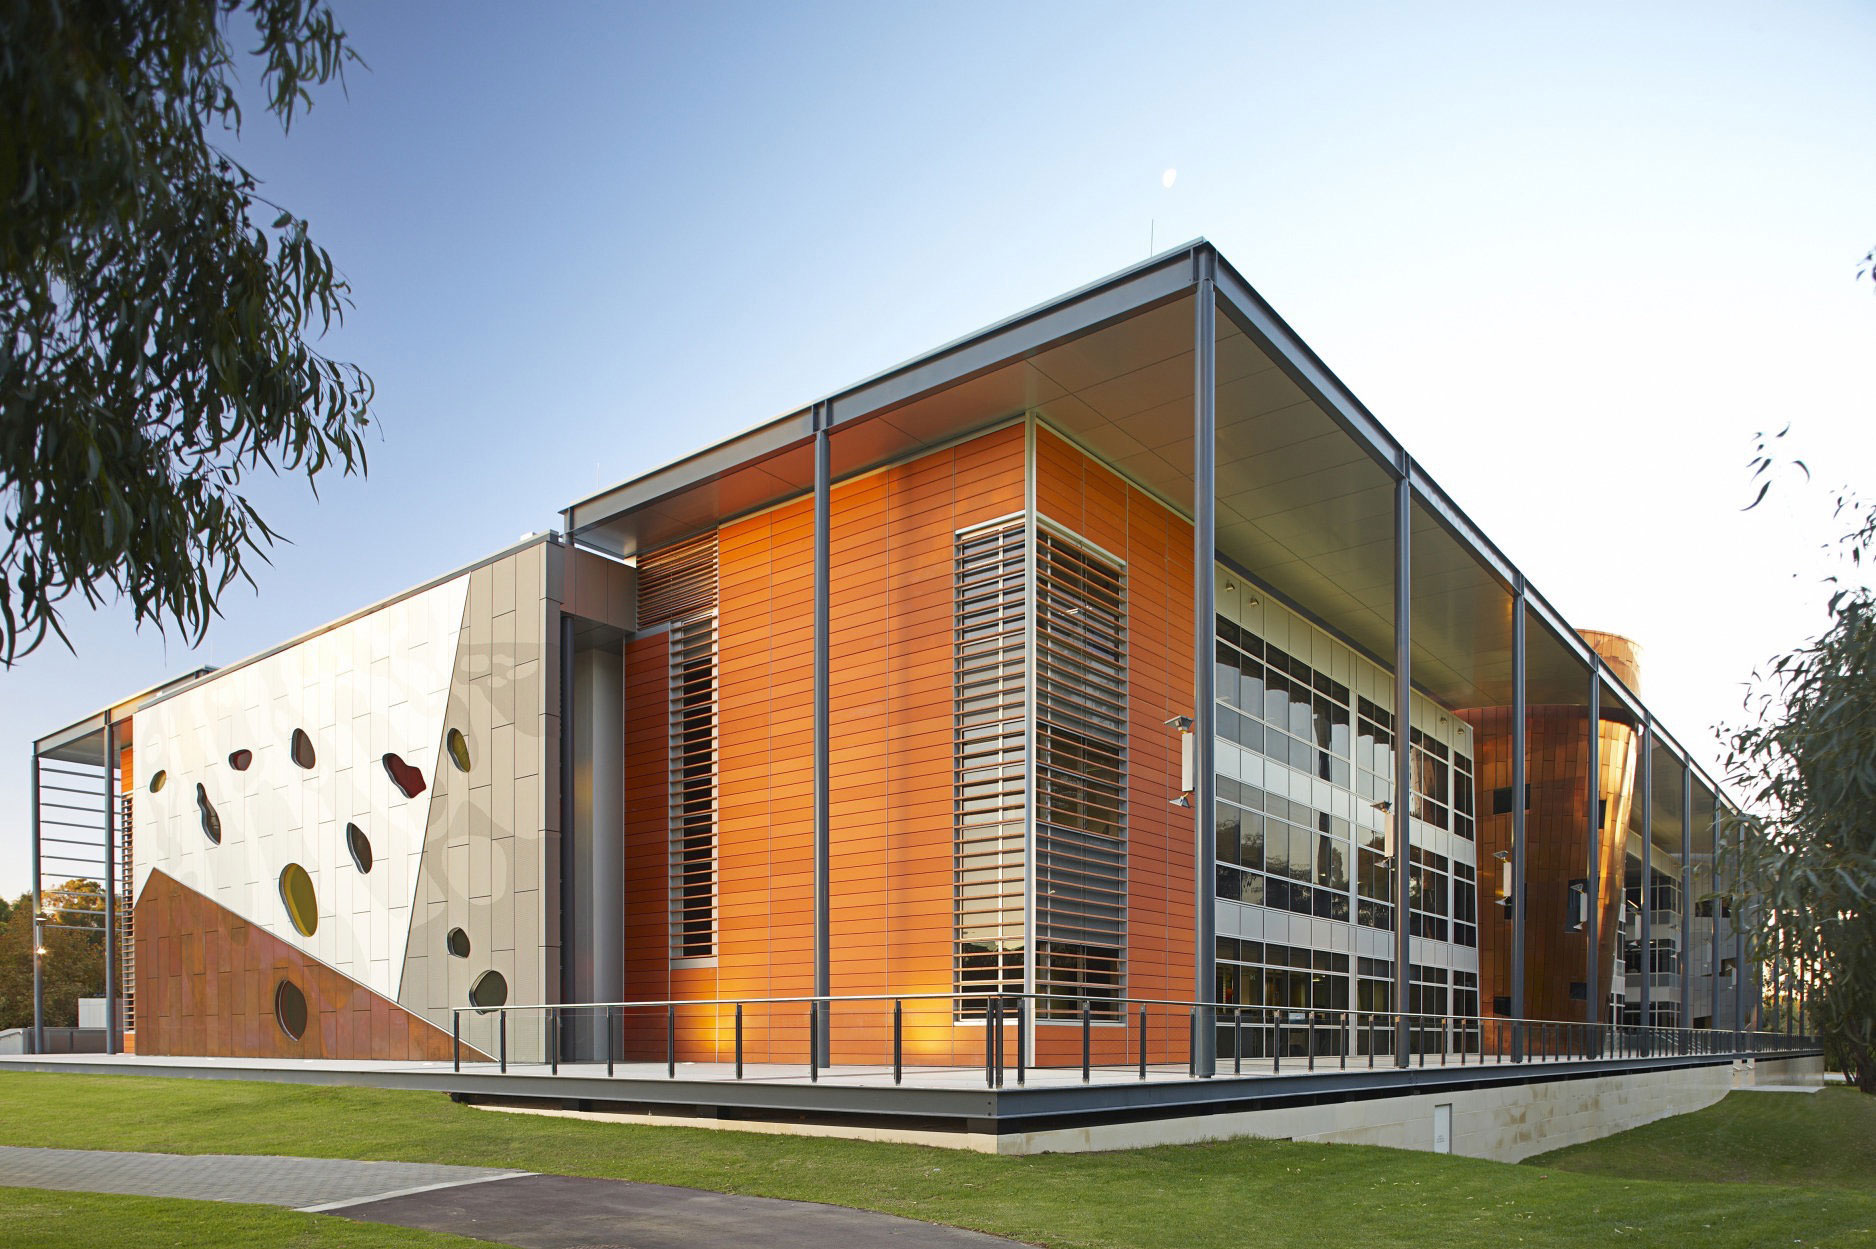 University of Western Australia Business School, Woods Bagot, Perth